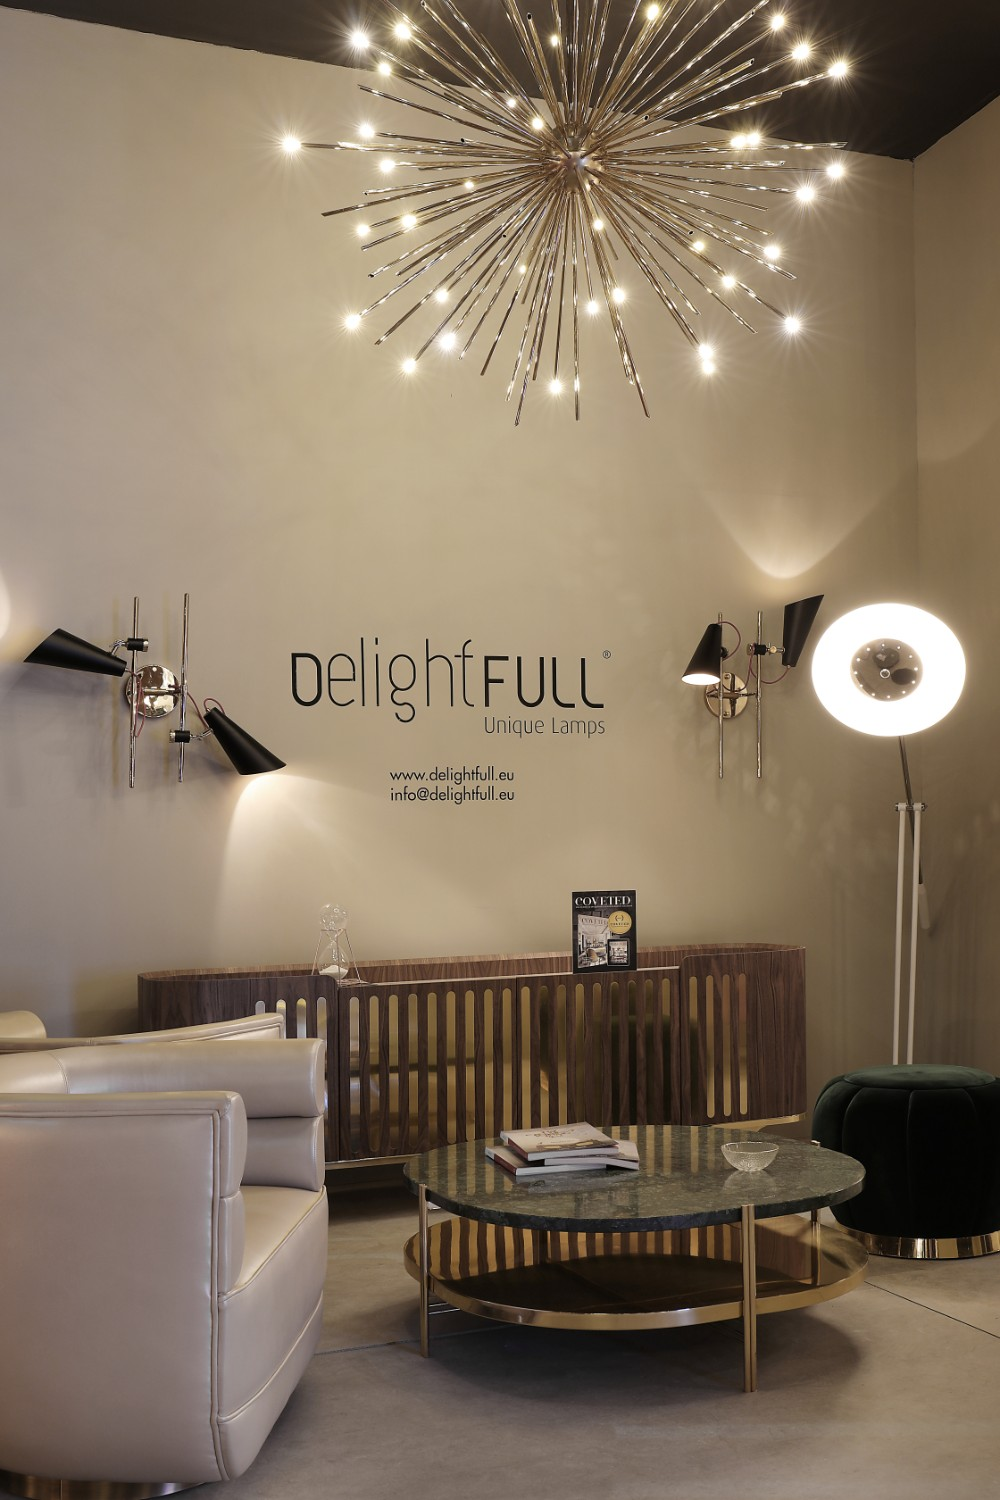 This Is What Happens When DelightFULL Takes Over Isaloni 2017! isaloni 2017 DelightFULL Has Taken Over iSaloni 2017 and This Is What's Happening! This Is What Happens When DelightFULL Takes Over Isaloni 2017 3